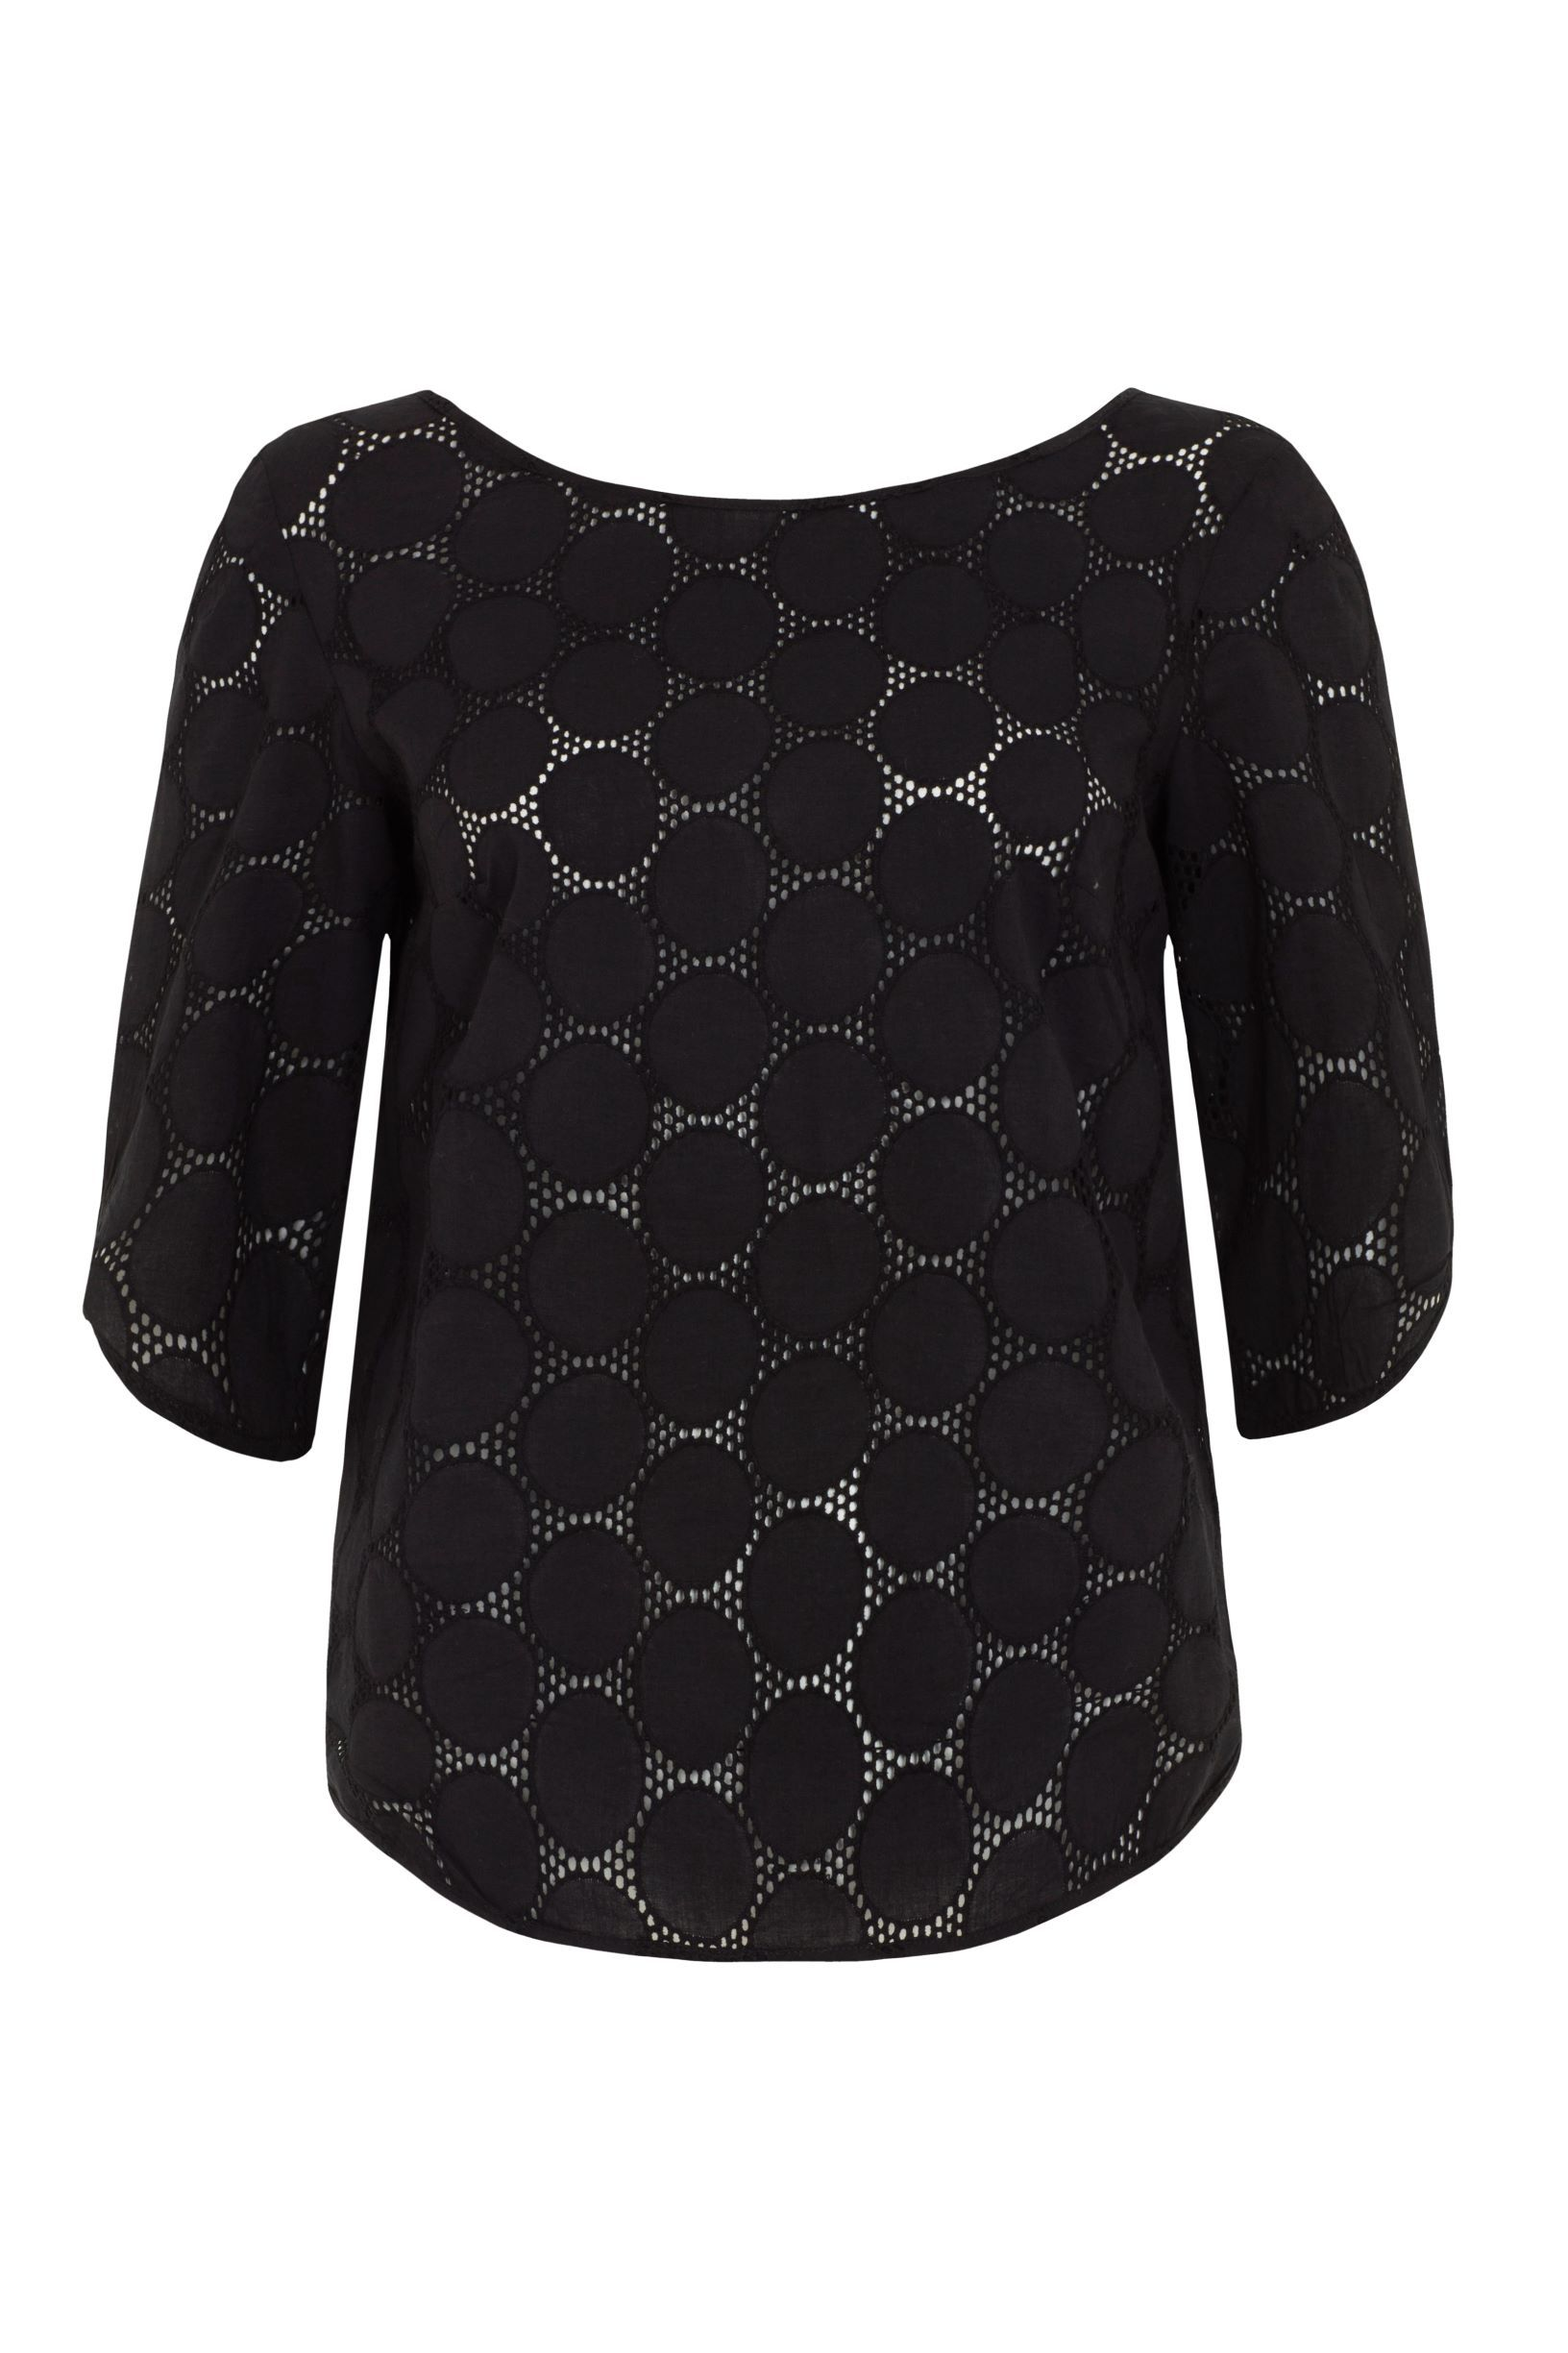 Emily & Fin Mabel Top Black - BouChic